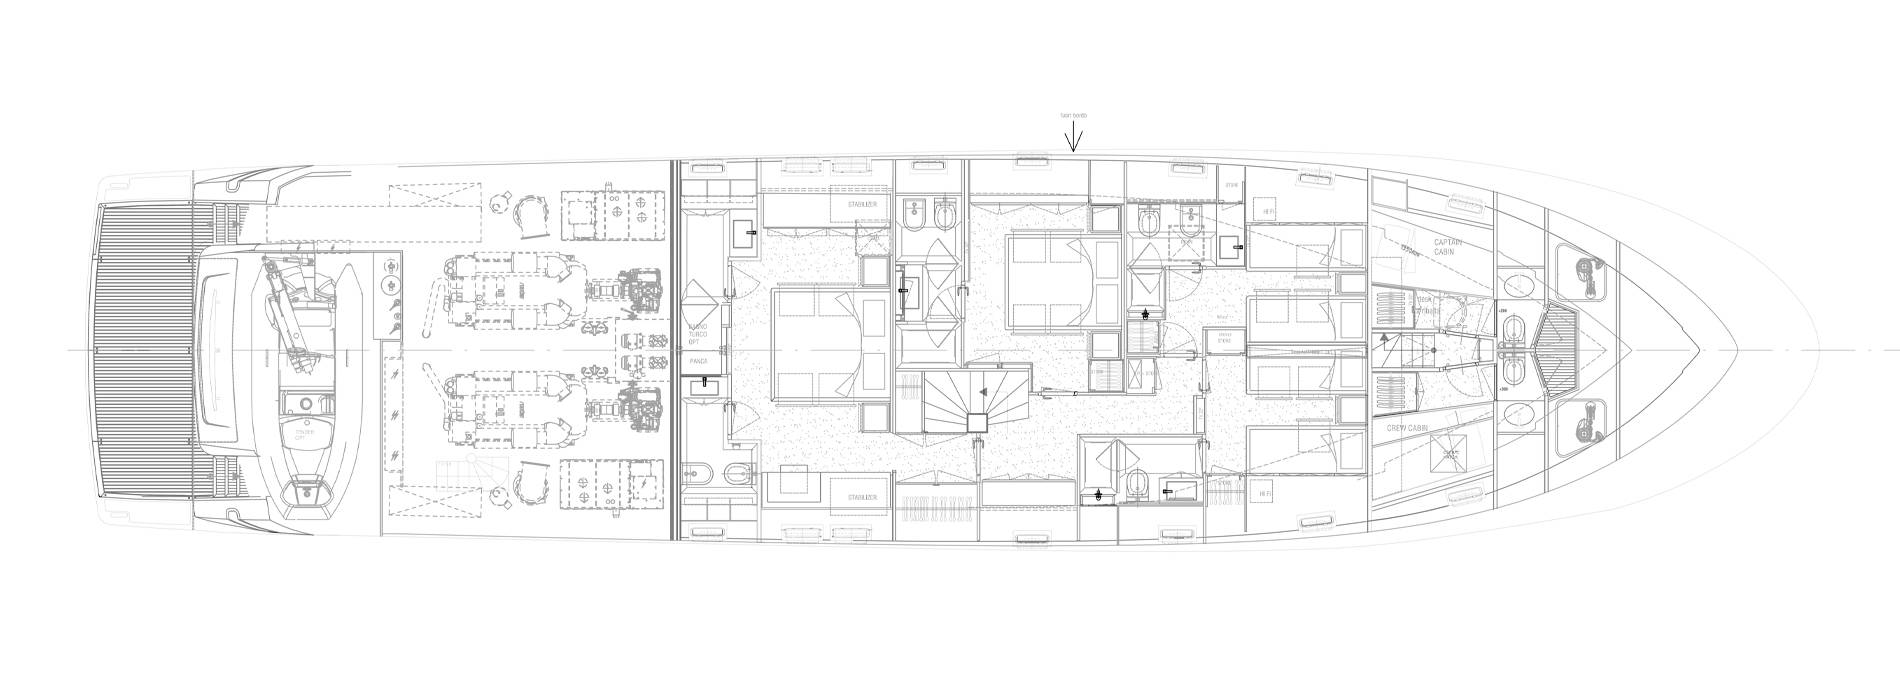 Sanlorenzo Yachts SL96-631 Lower Deck